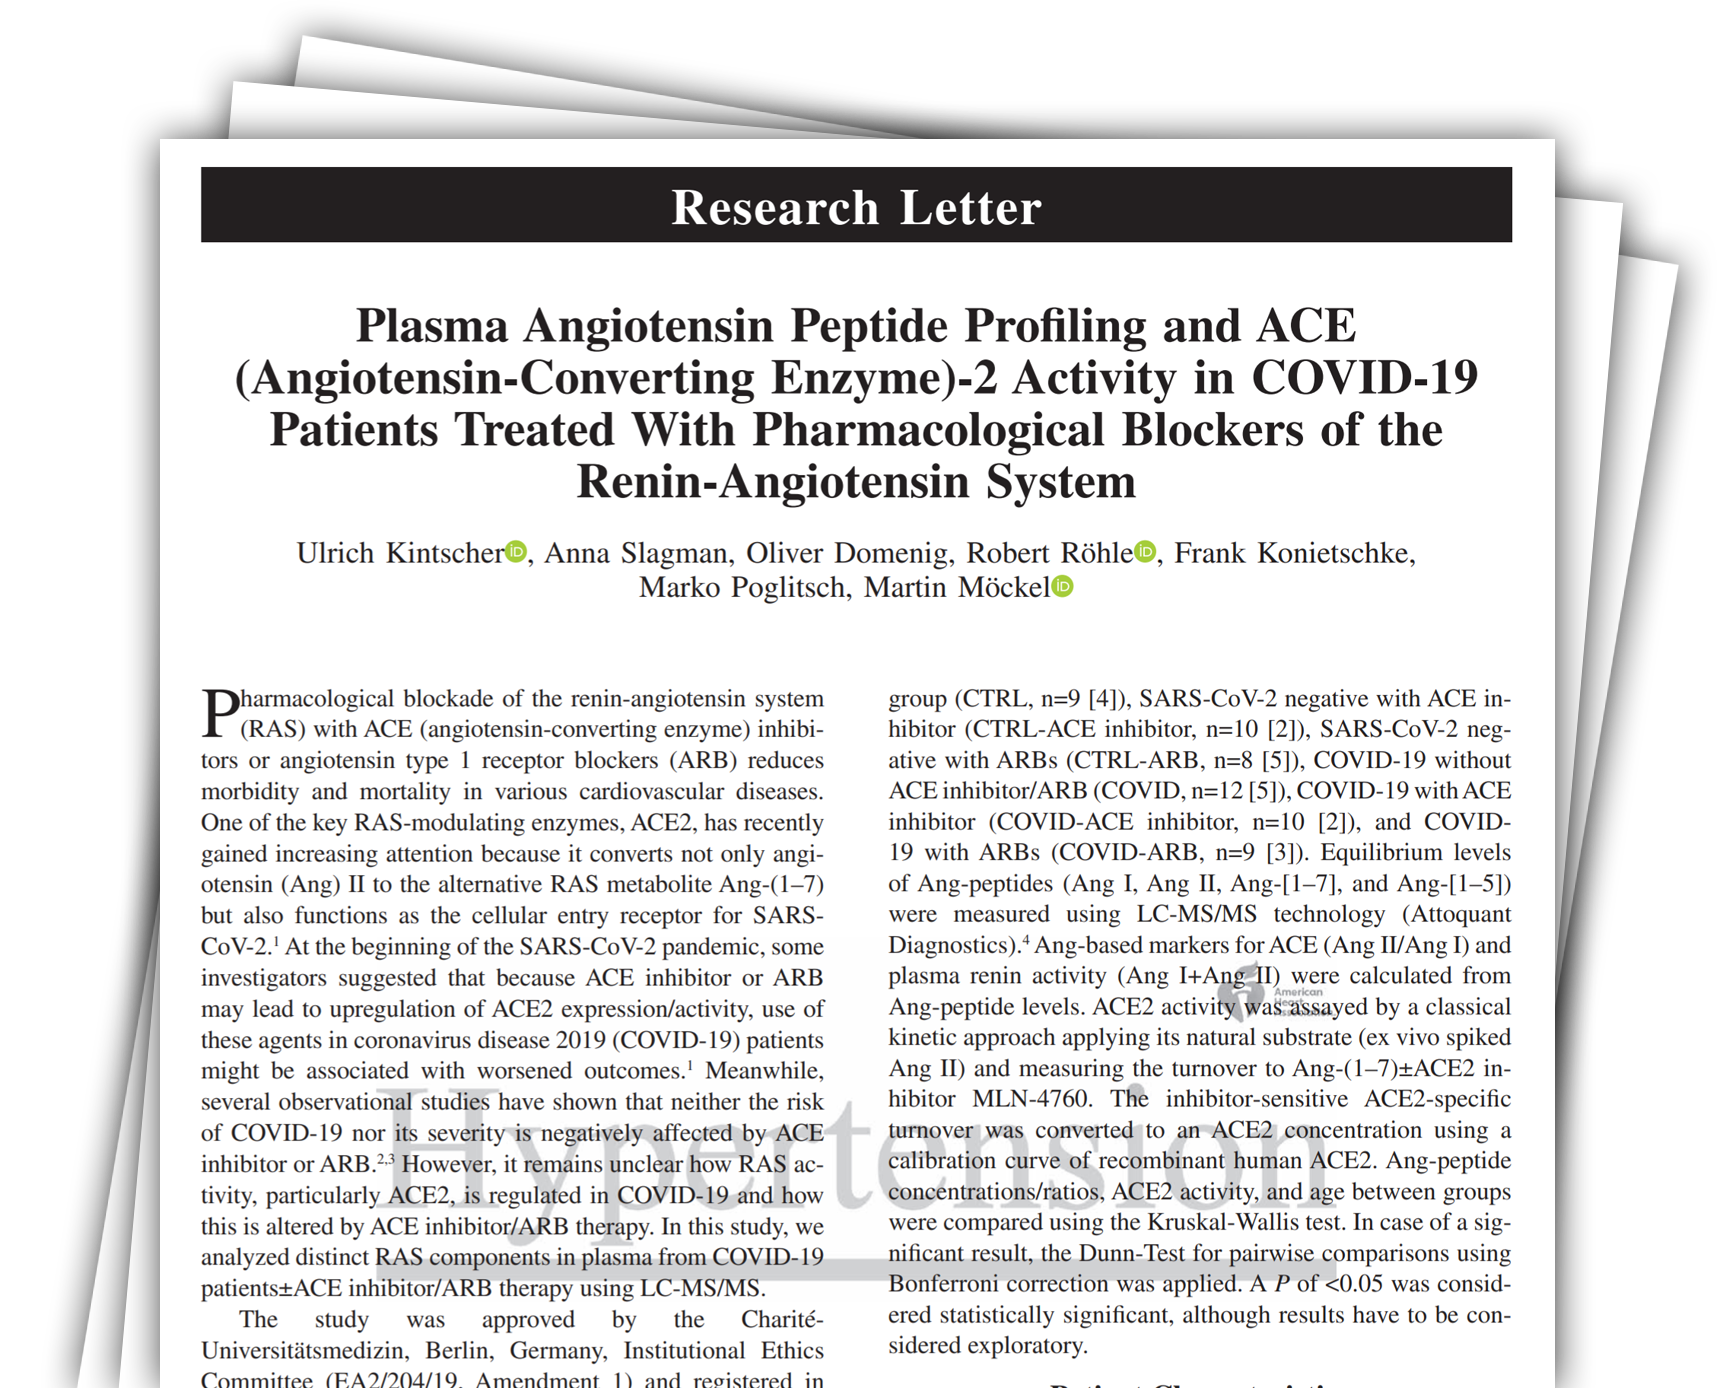 Plasma Angiotensin Peptide Profiling and ACE (Angiotensin-Converting Enzyme)-2 Activity in COVID-19 Patients Treated With Pharmacological Blockers of the Renin-Angiotensin System